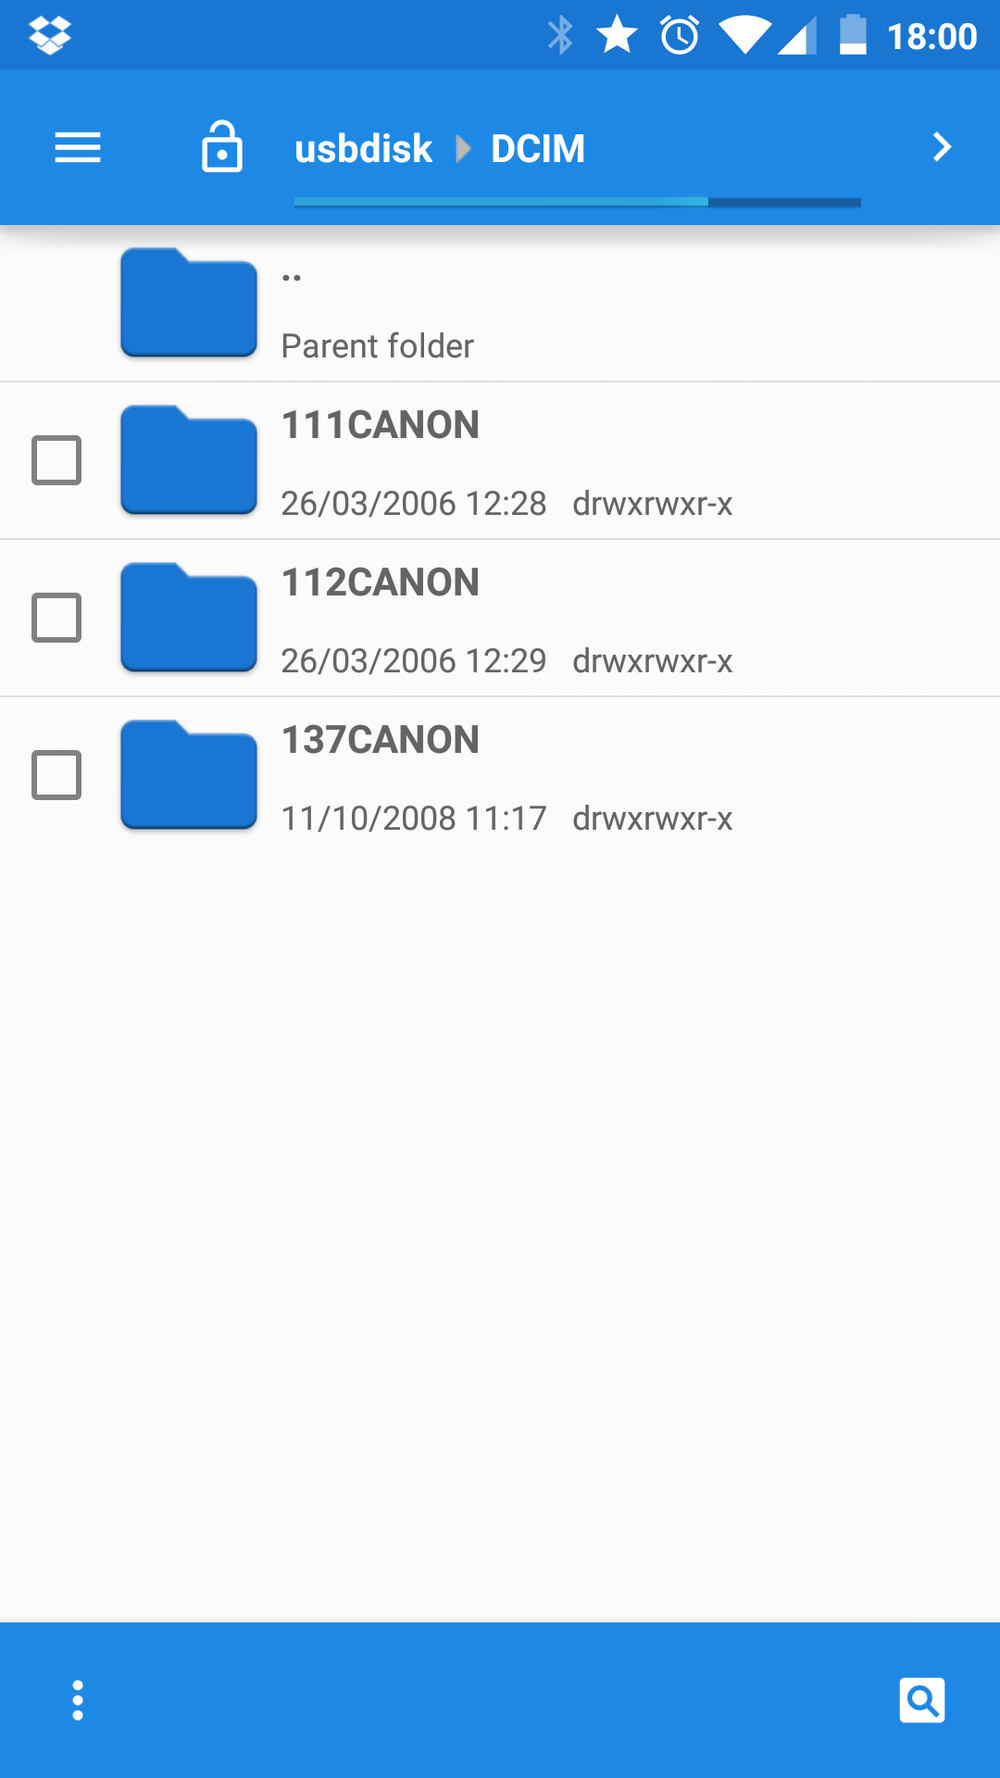 My Sony cameras write to a folder called DCIM